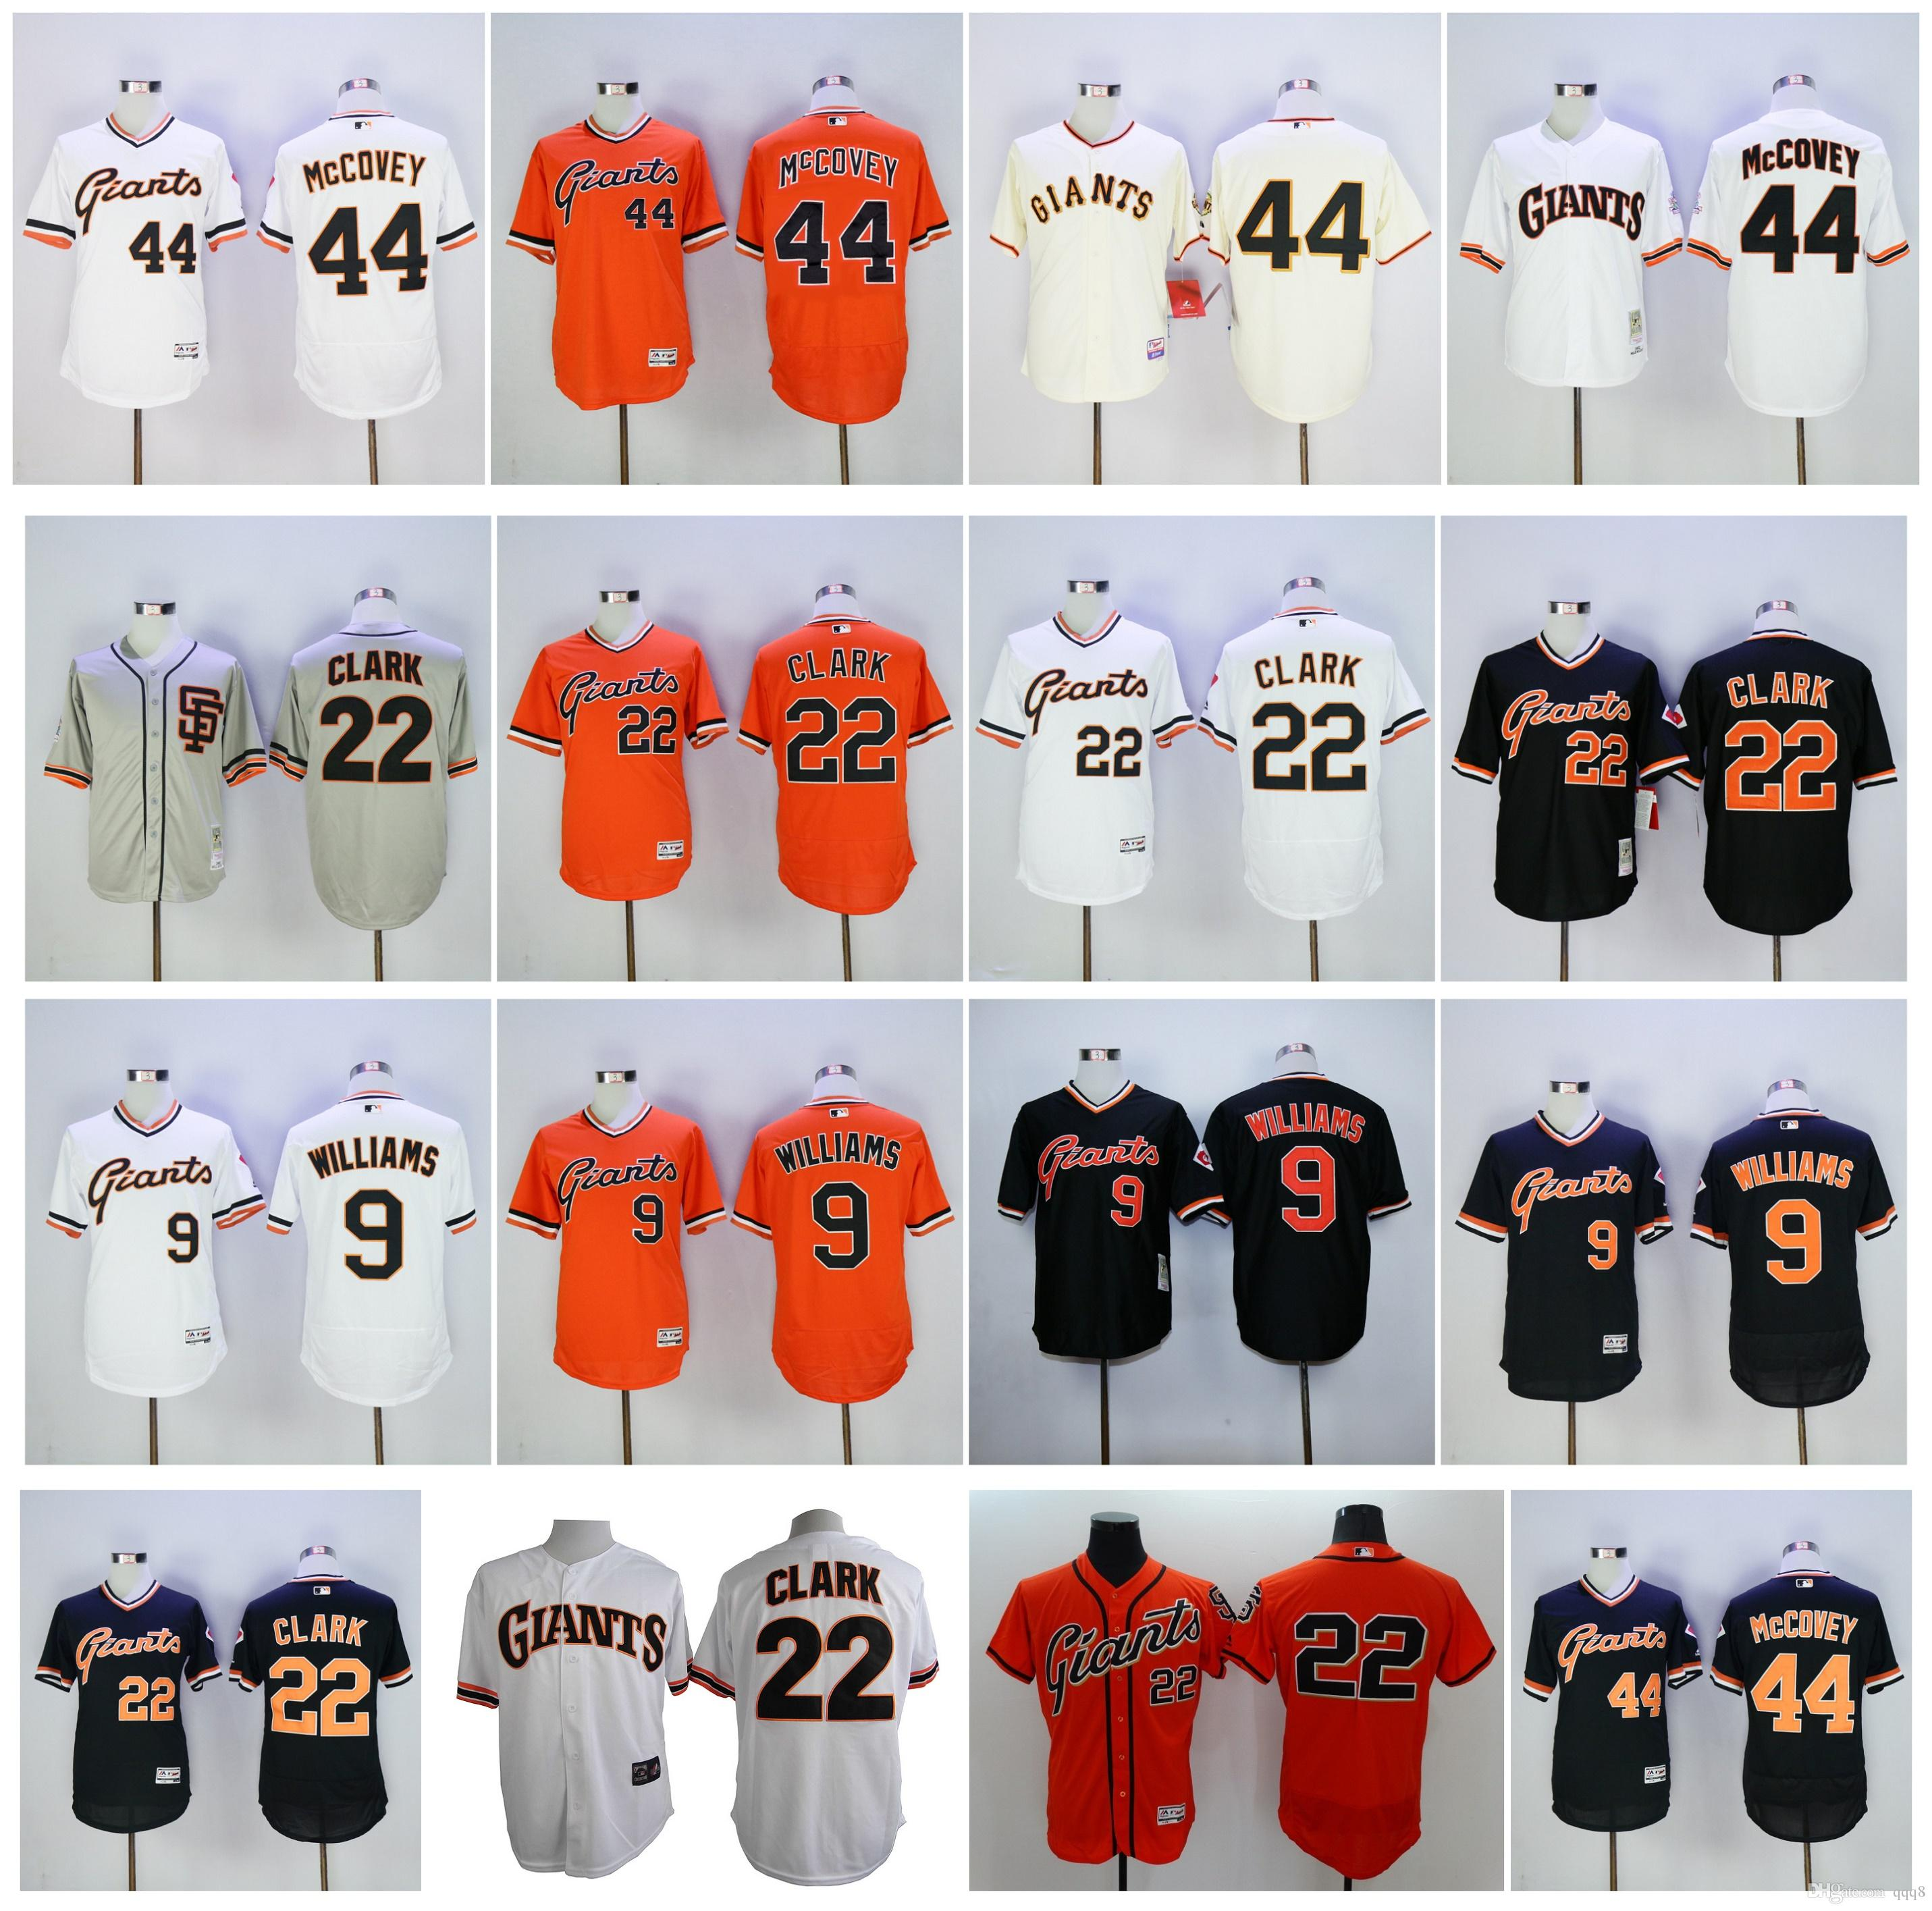 new concept 16713 8b0a0 44 willie mccovey jersey events